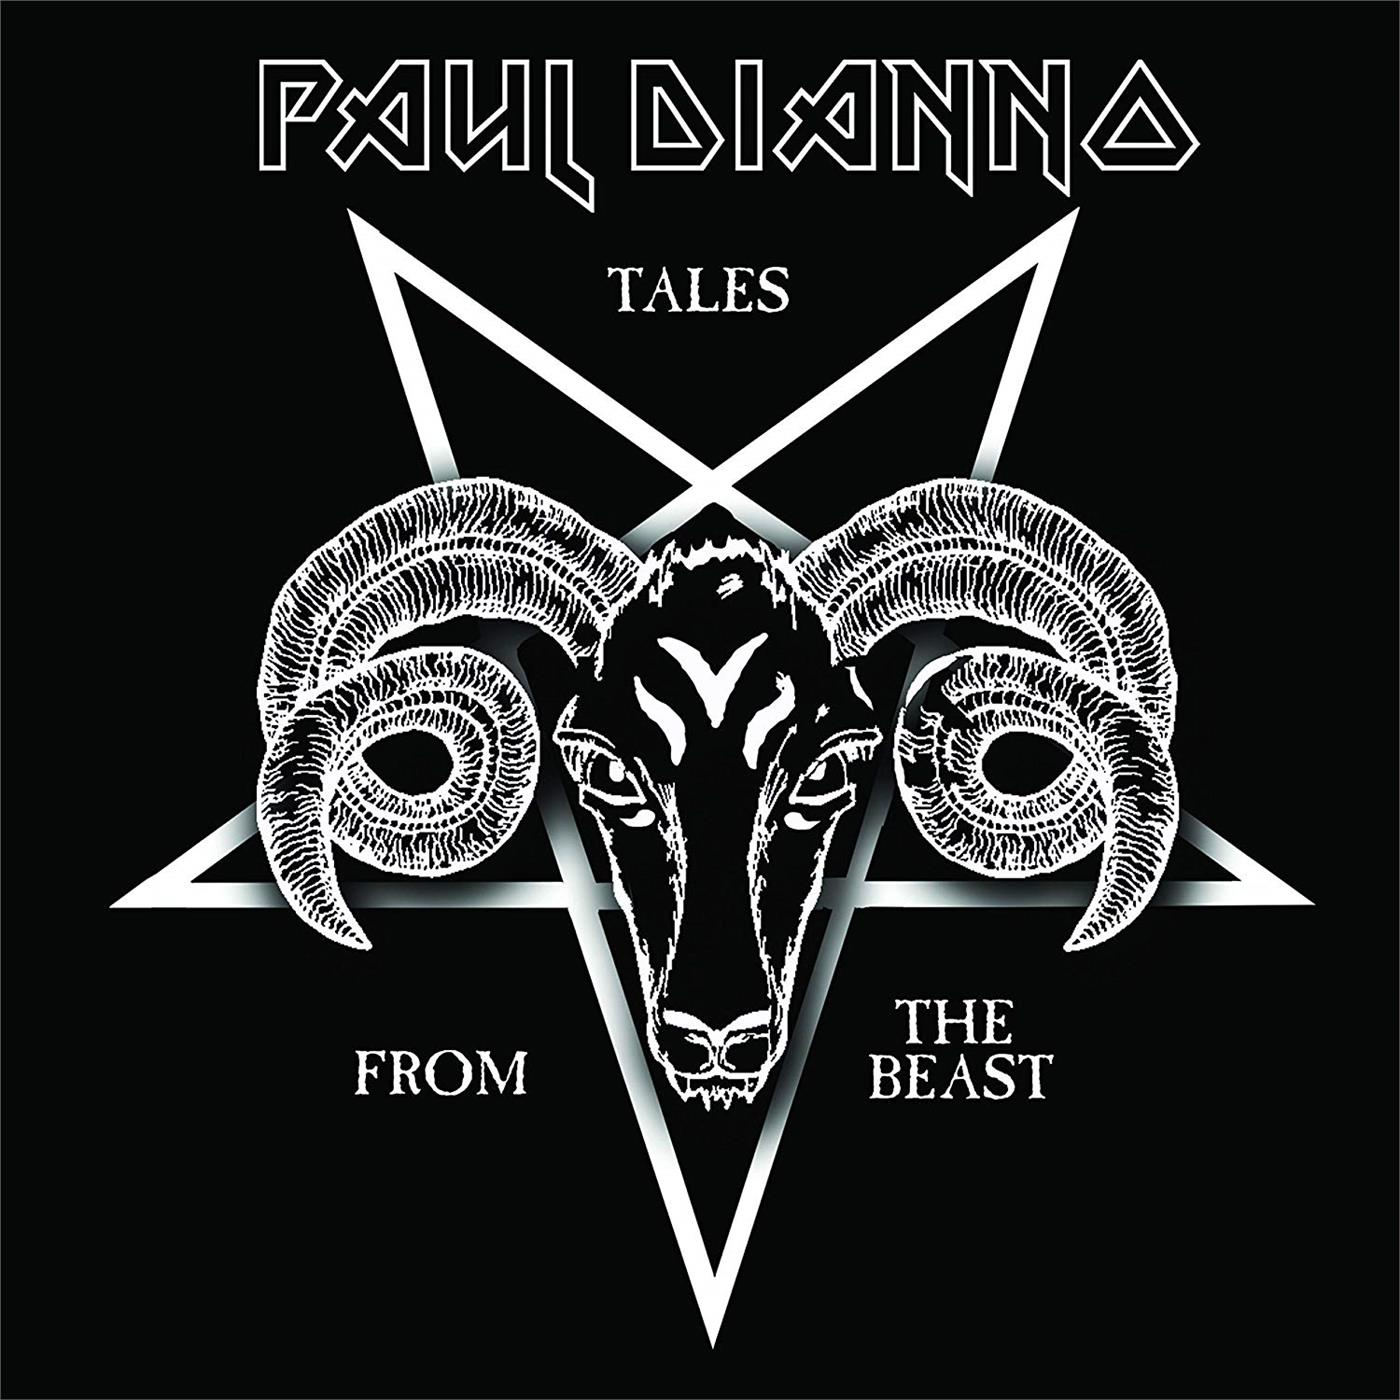 CLOLP1375 Cleopatra  Paul DiAnno Tales From The Beast (LP)